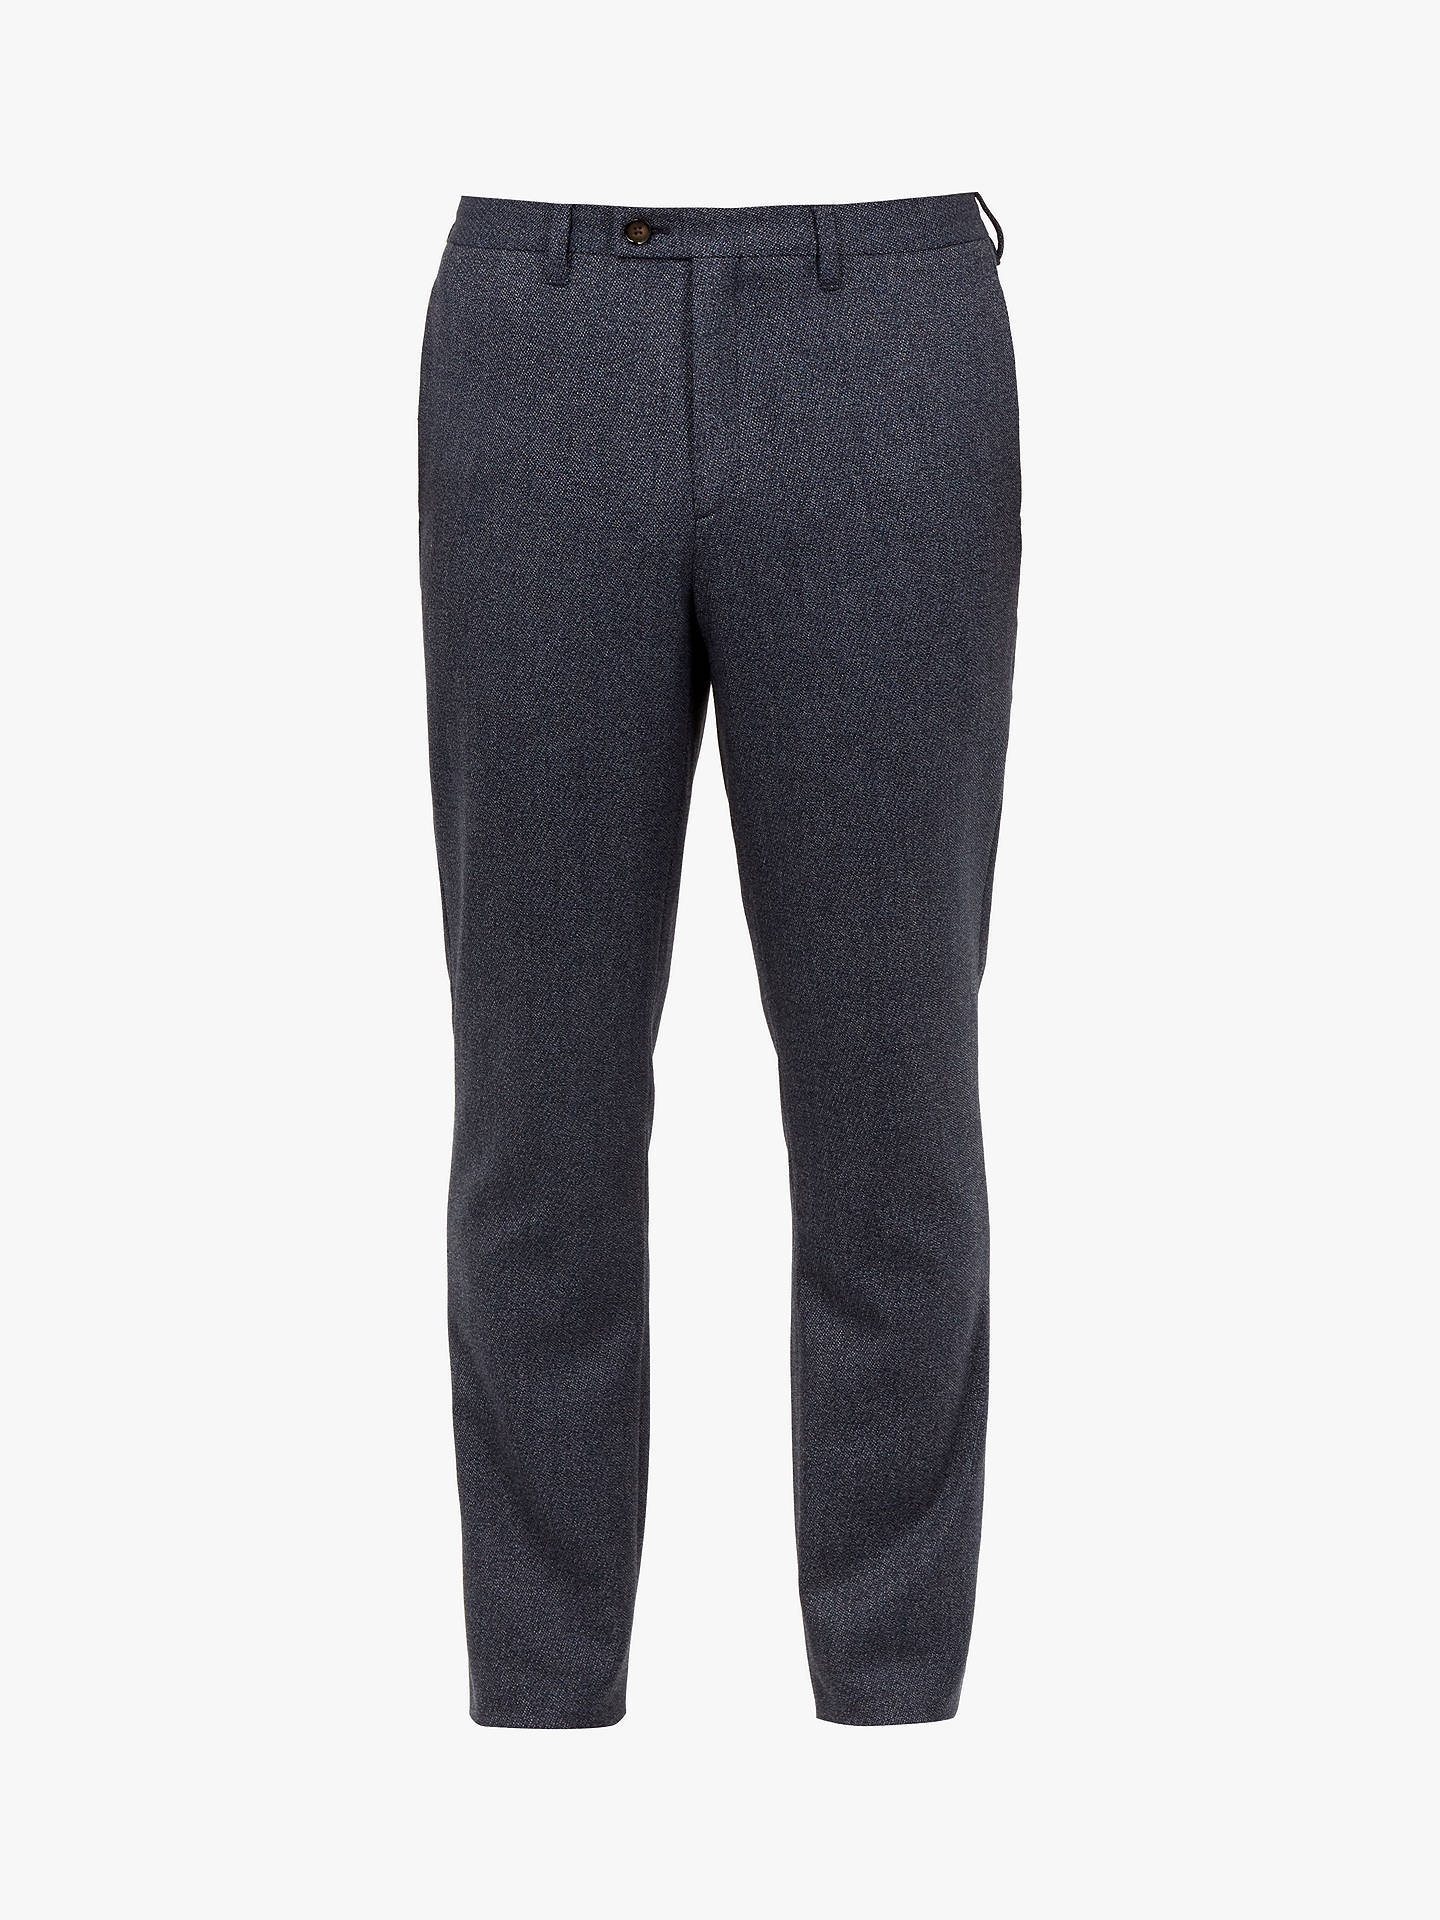 BuyTed Baker T for Tall Buftrtt Twill Trousers, Mid Blue, 32L Online at johnlewis.com